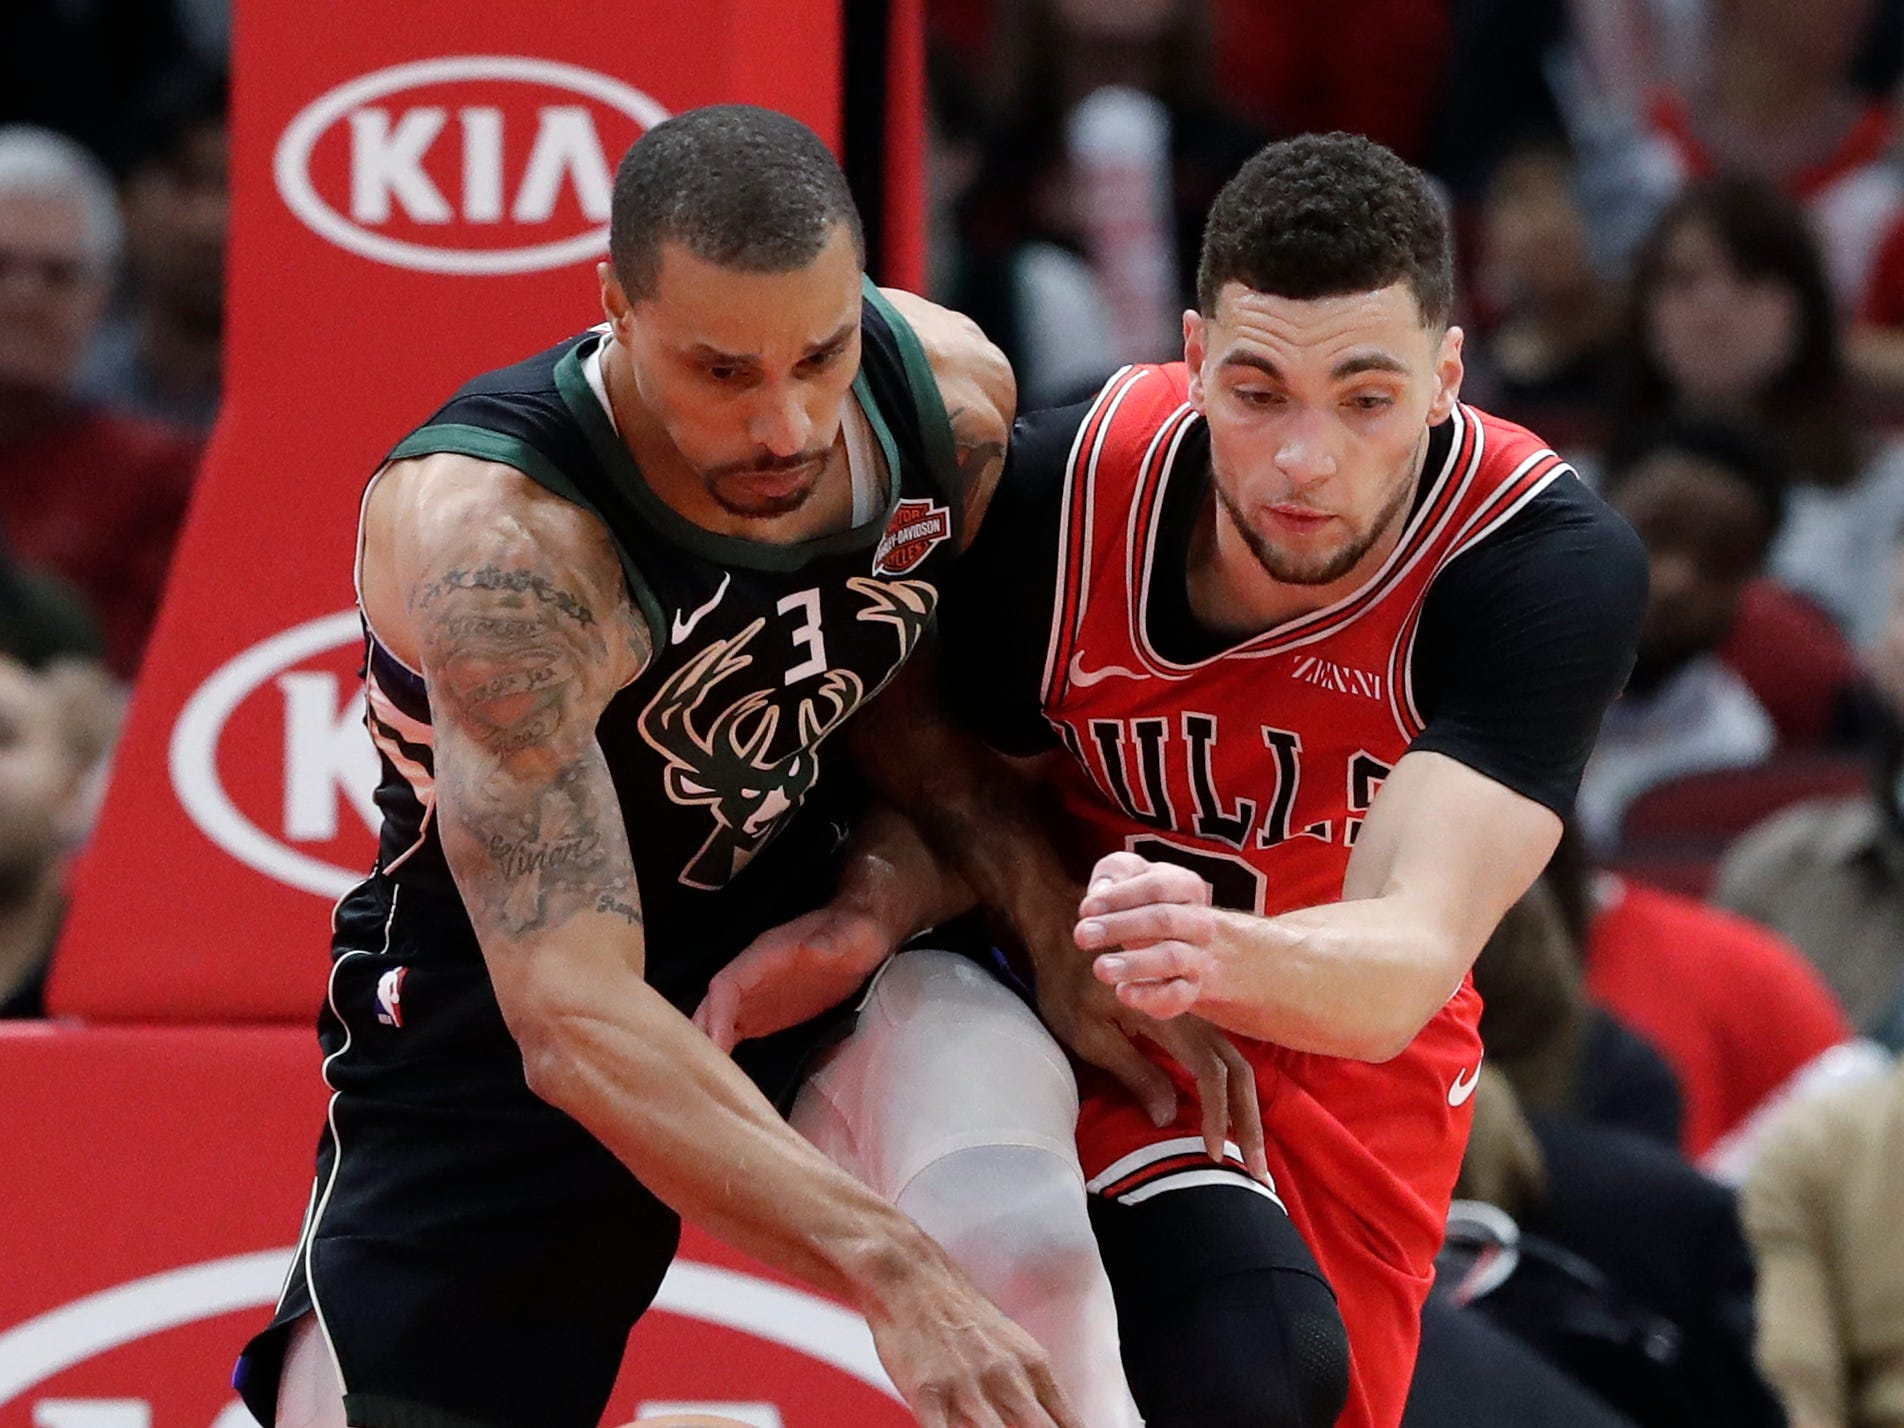 Bucks guard George Hill battles for a loose ball against Bulls guard Zach LaVine during the first half Monday.